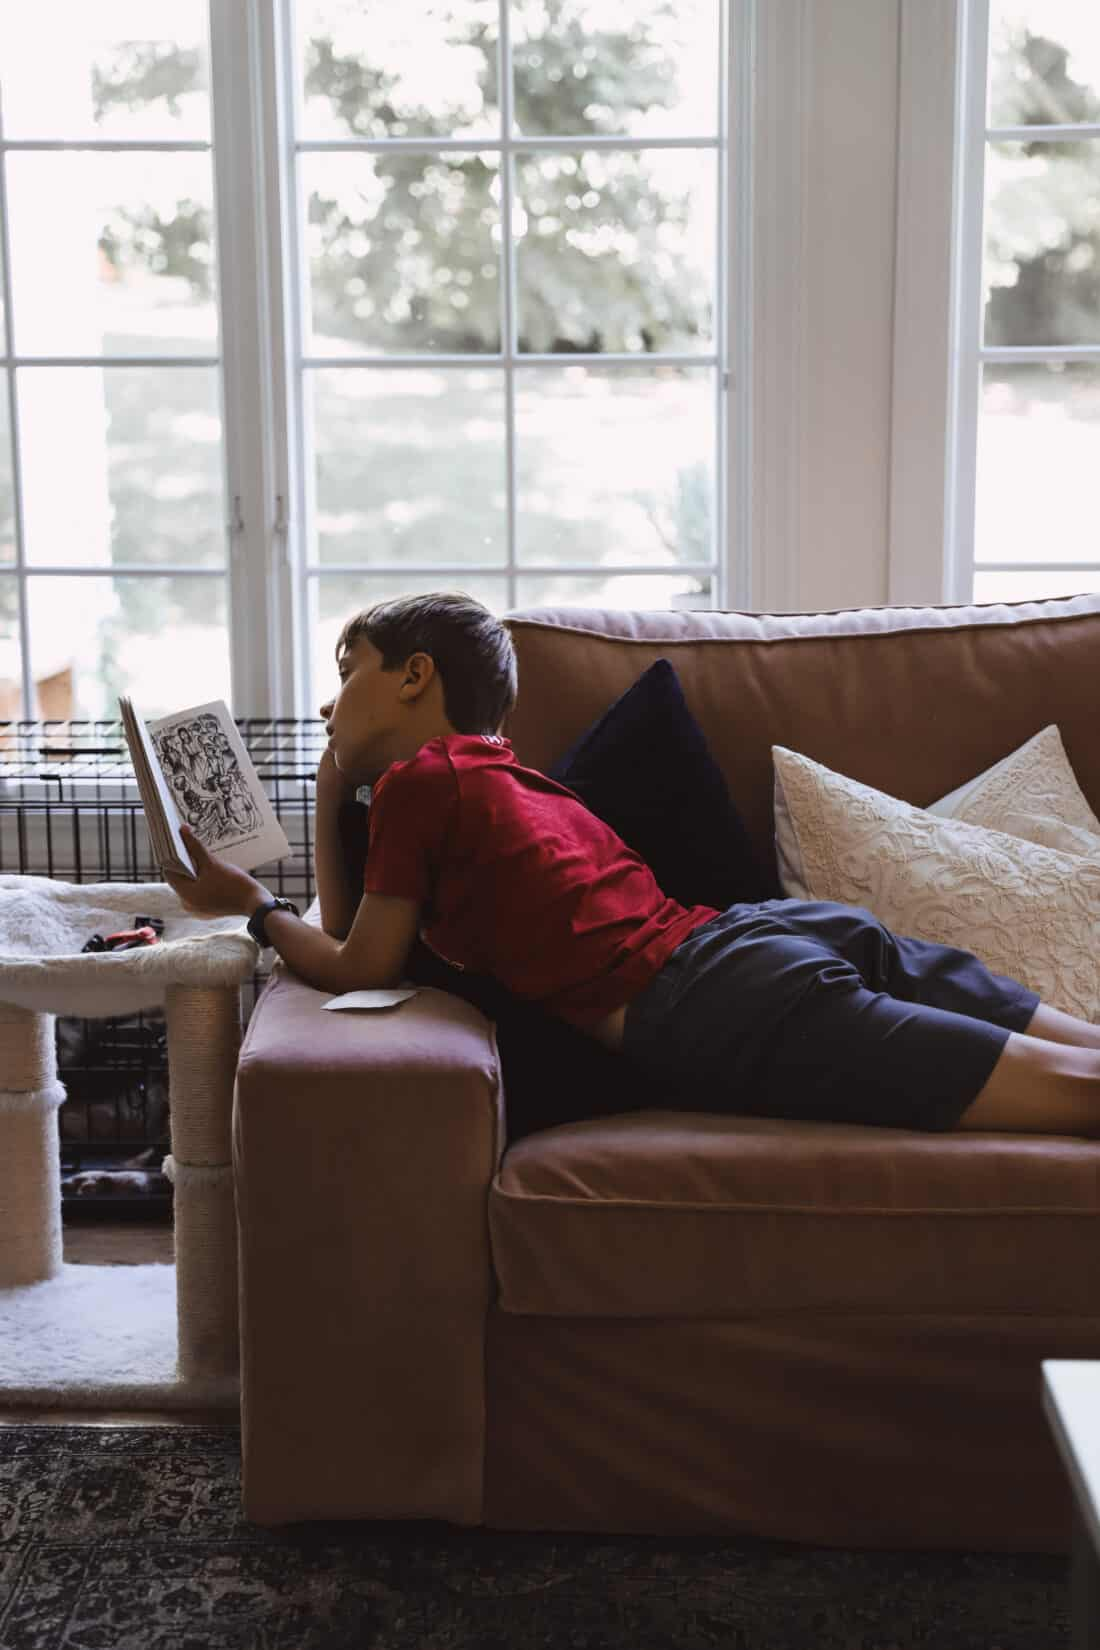 child reading a book on a couch